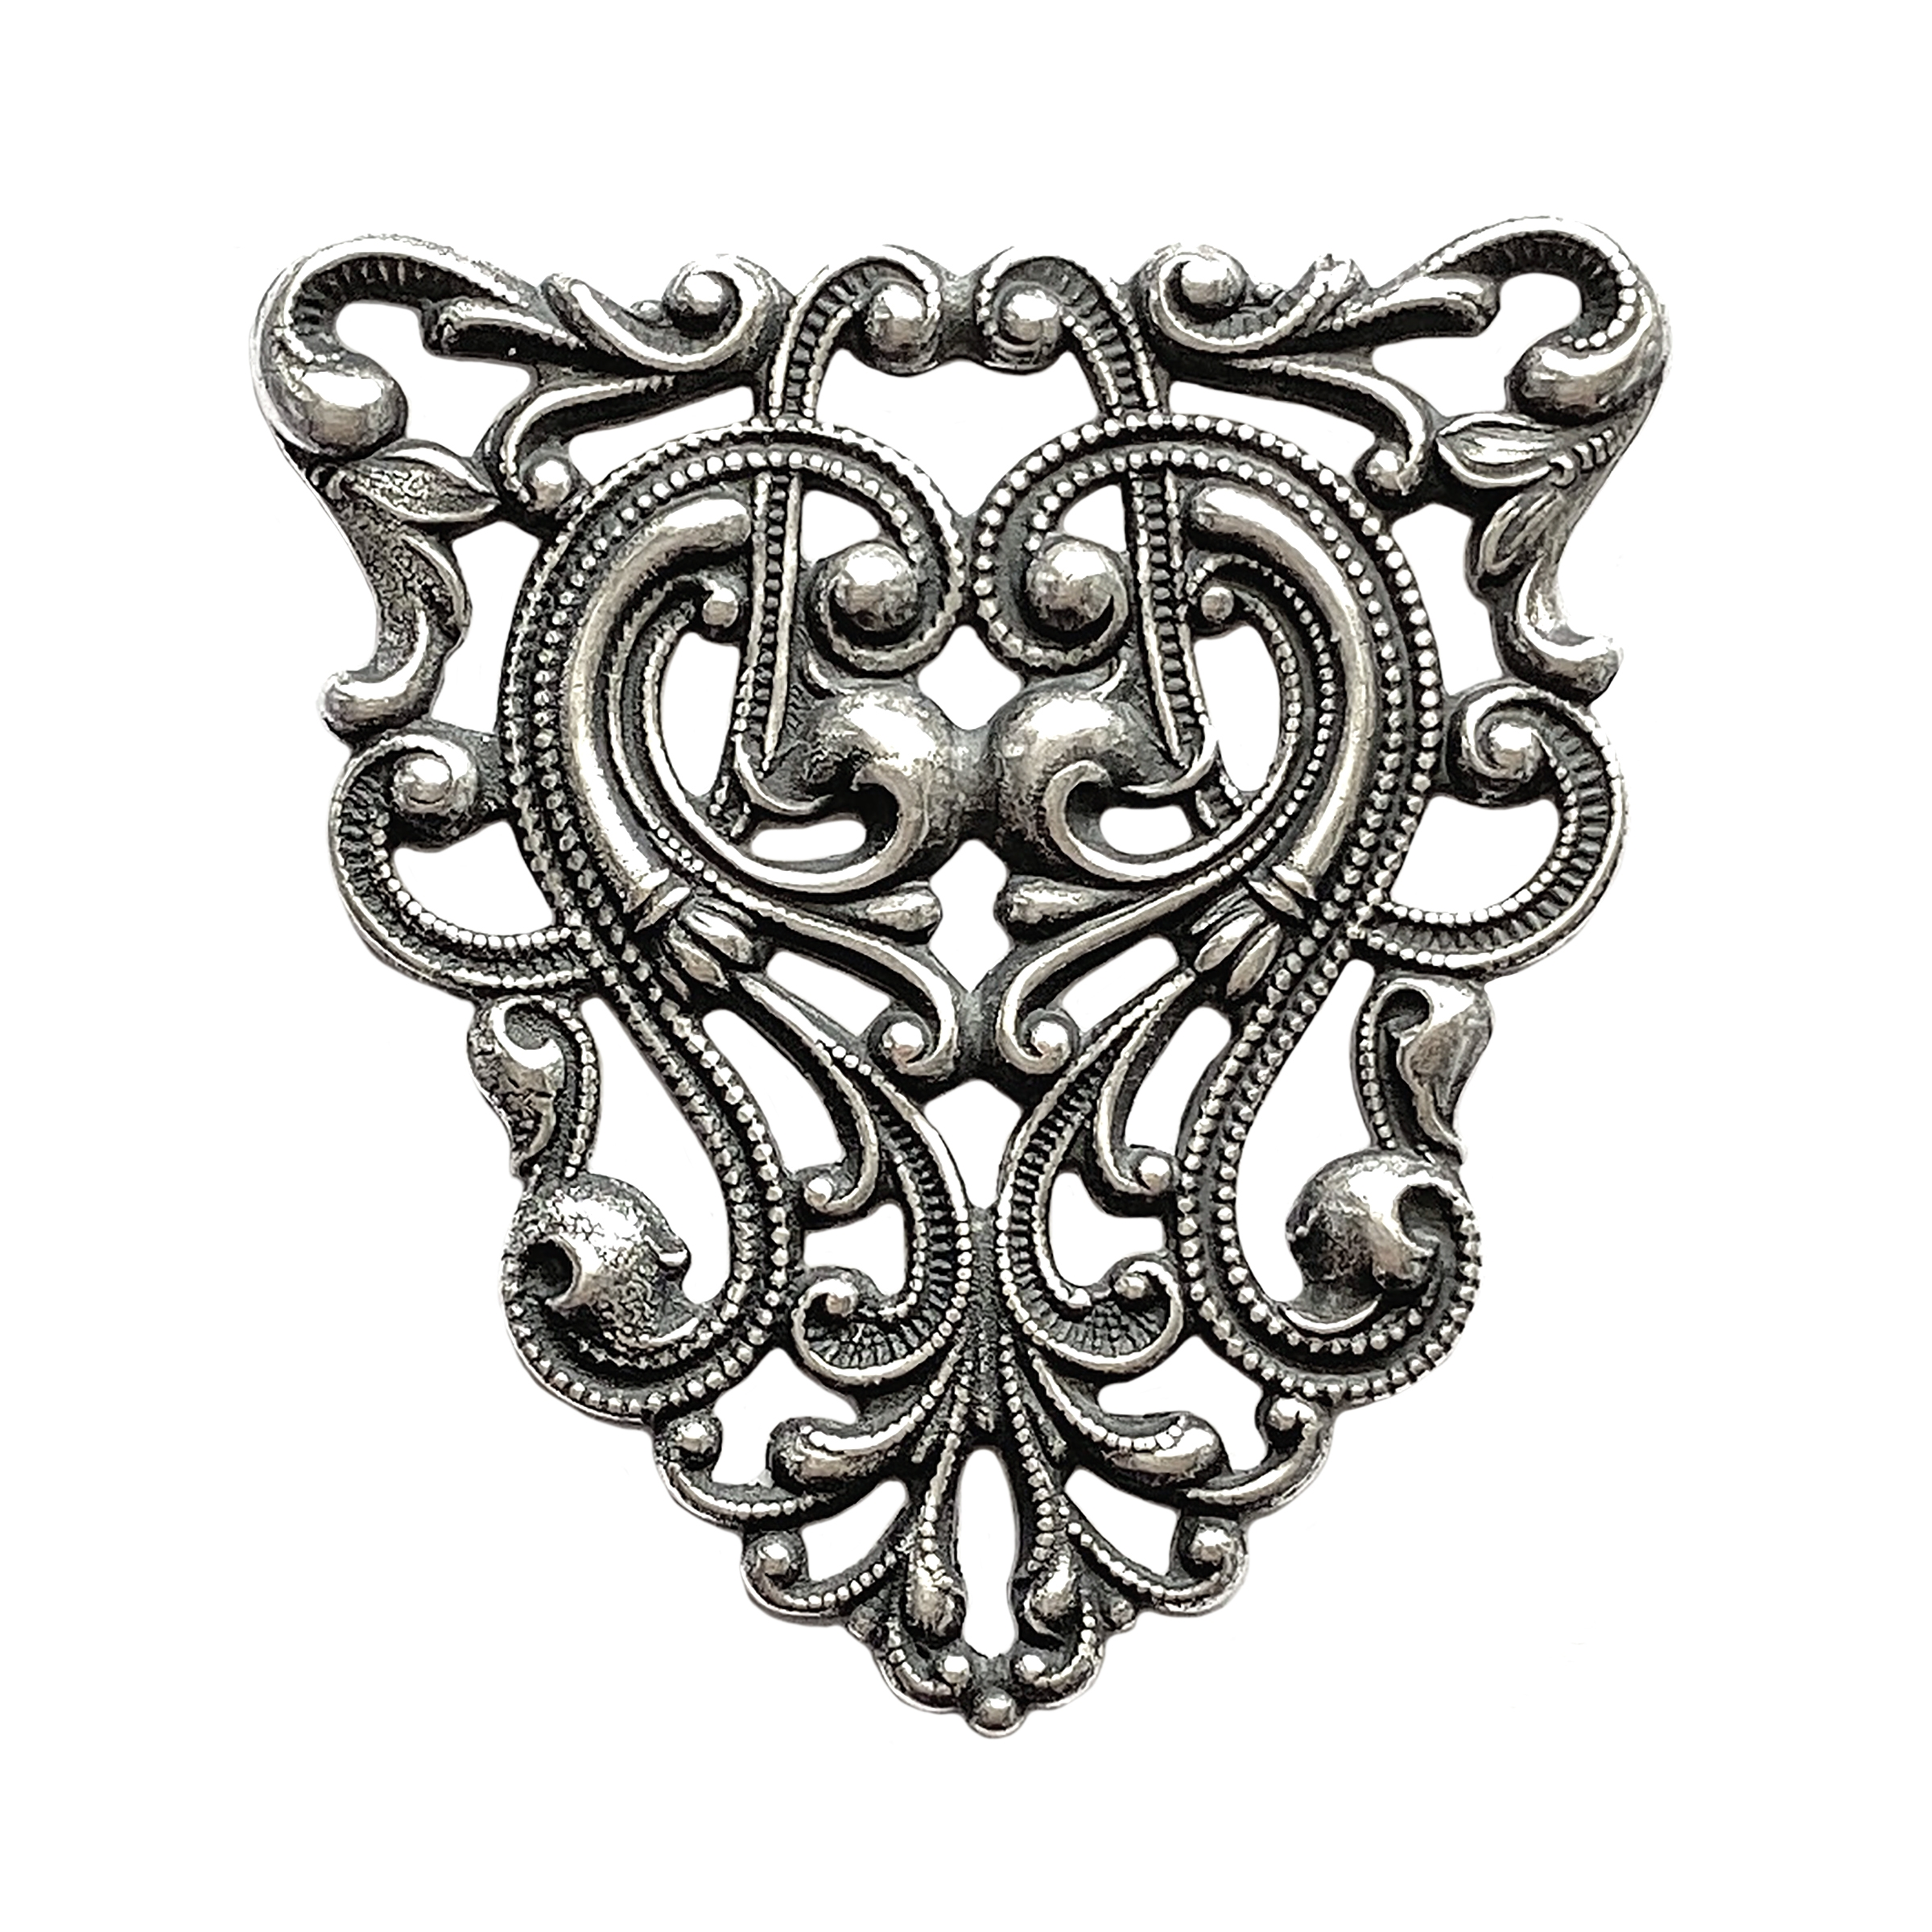 brass filigree, brass stampings, beading filigree, 0714, silverware silver plate, antique silver, silver plate, Art Nouveau Style, US made, nickel free, Bsue Boutiques, vintage jewelry supplies, brass jewelry parts